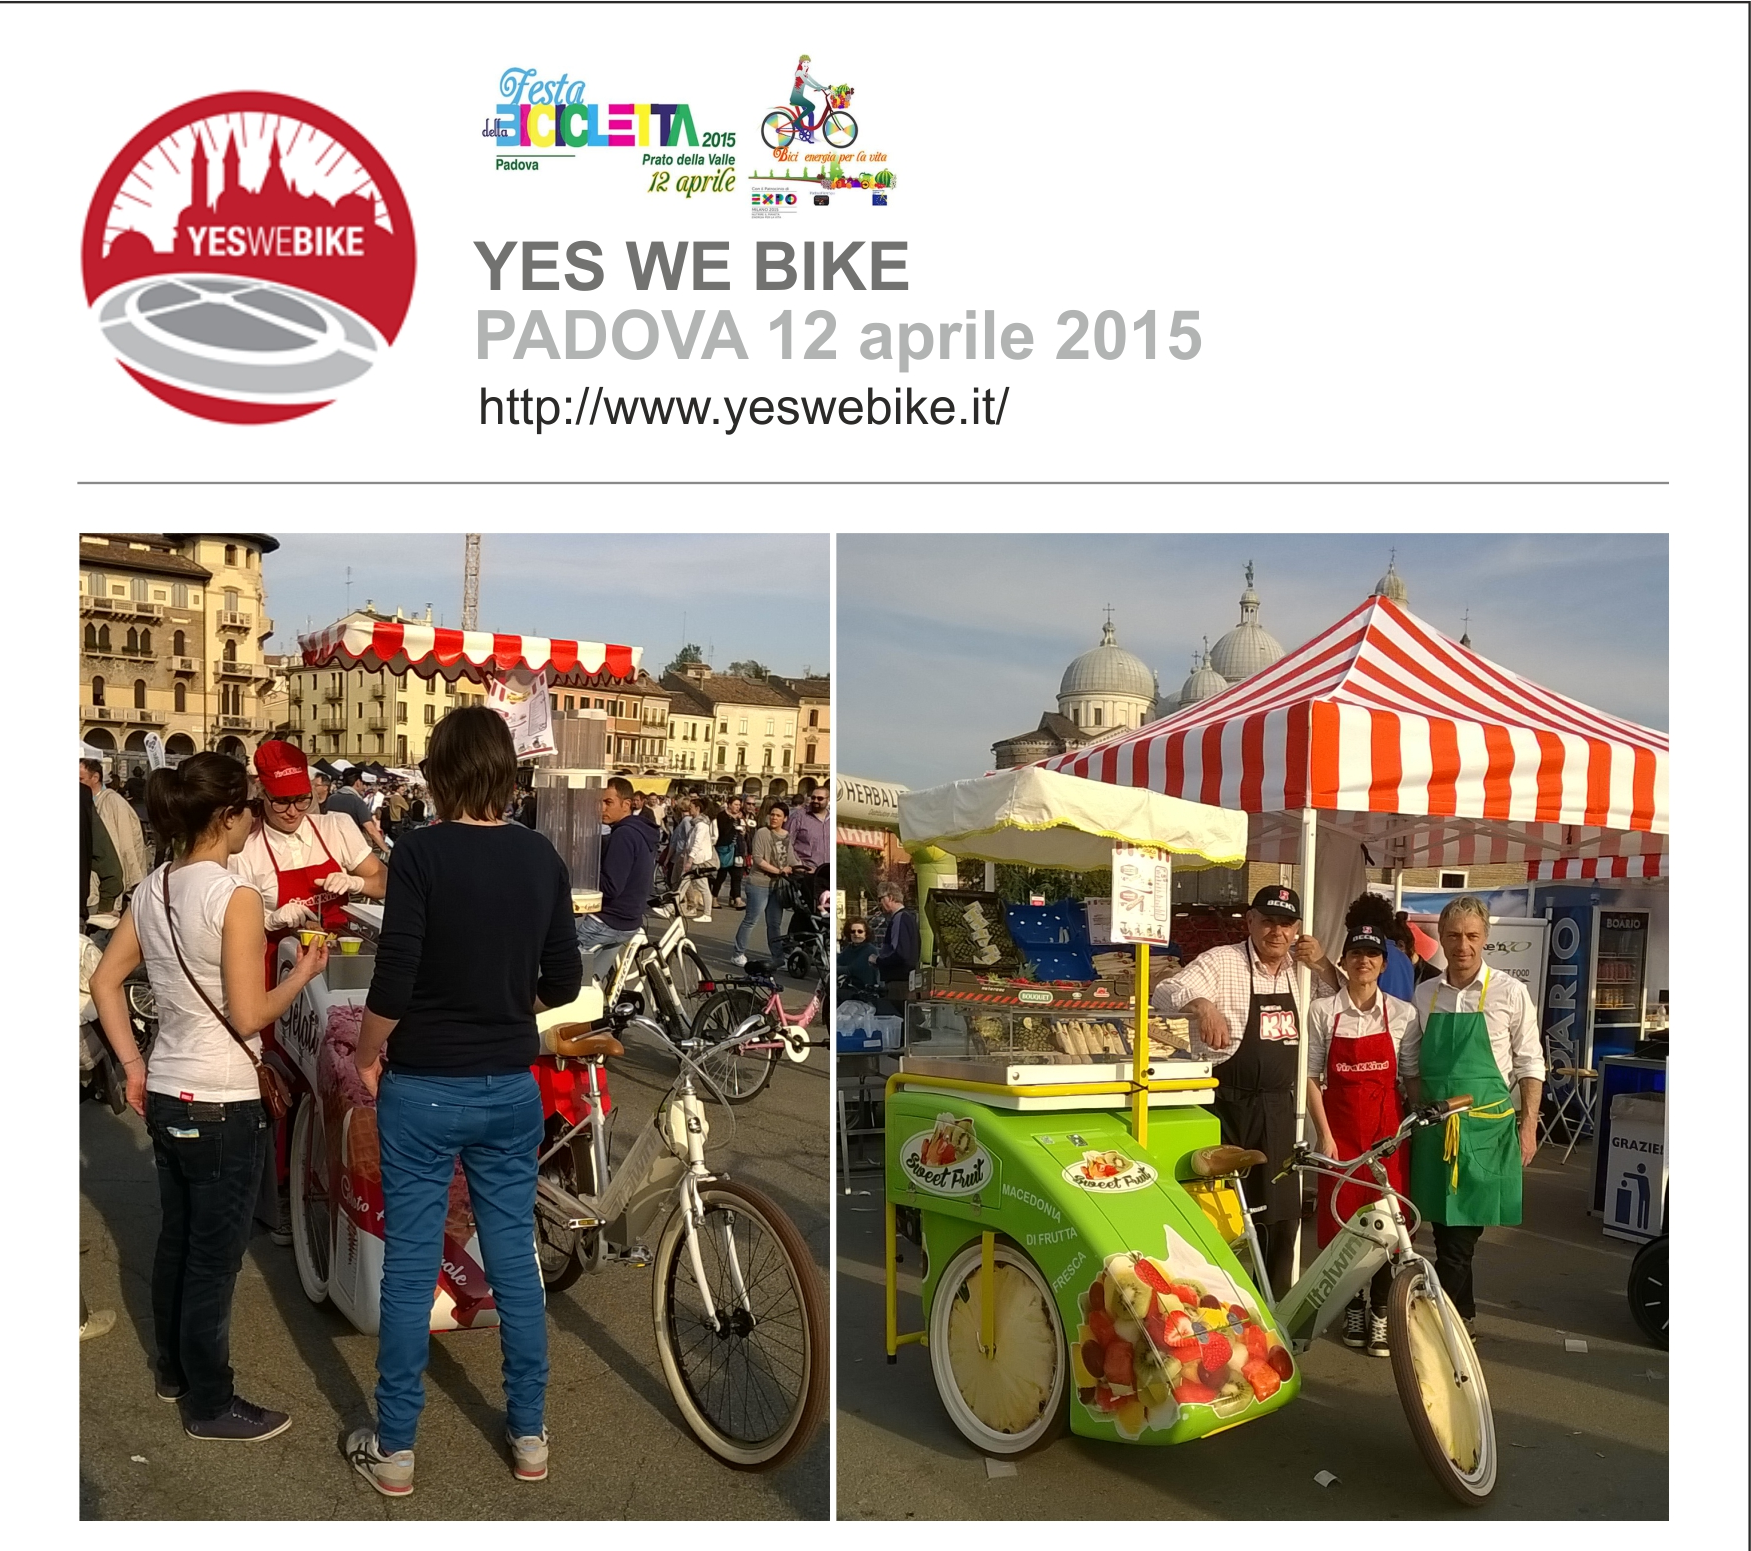 Yes We Bike - Padova